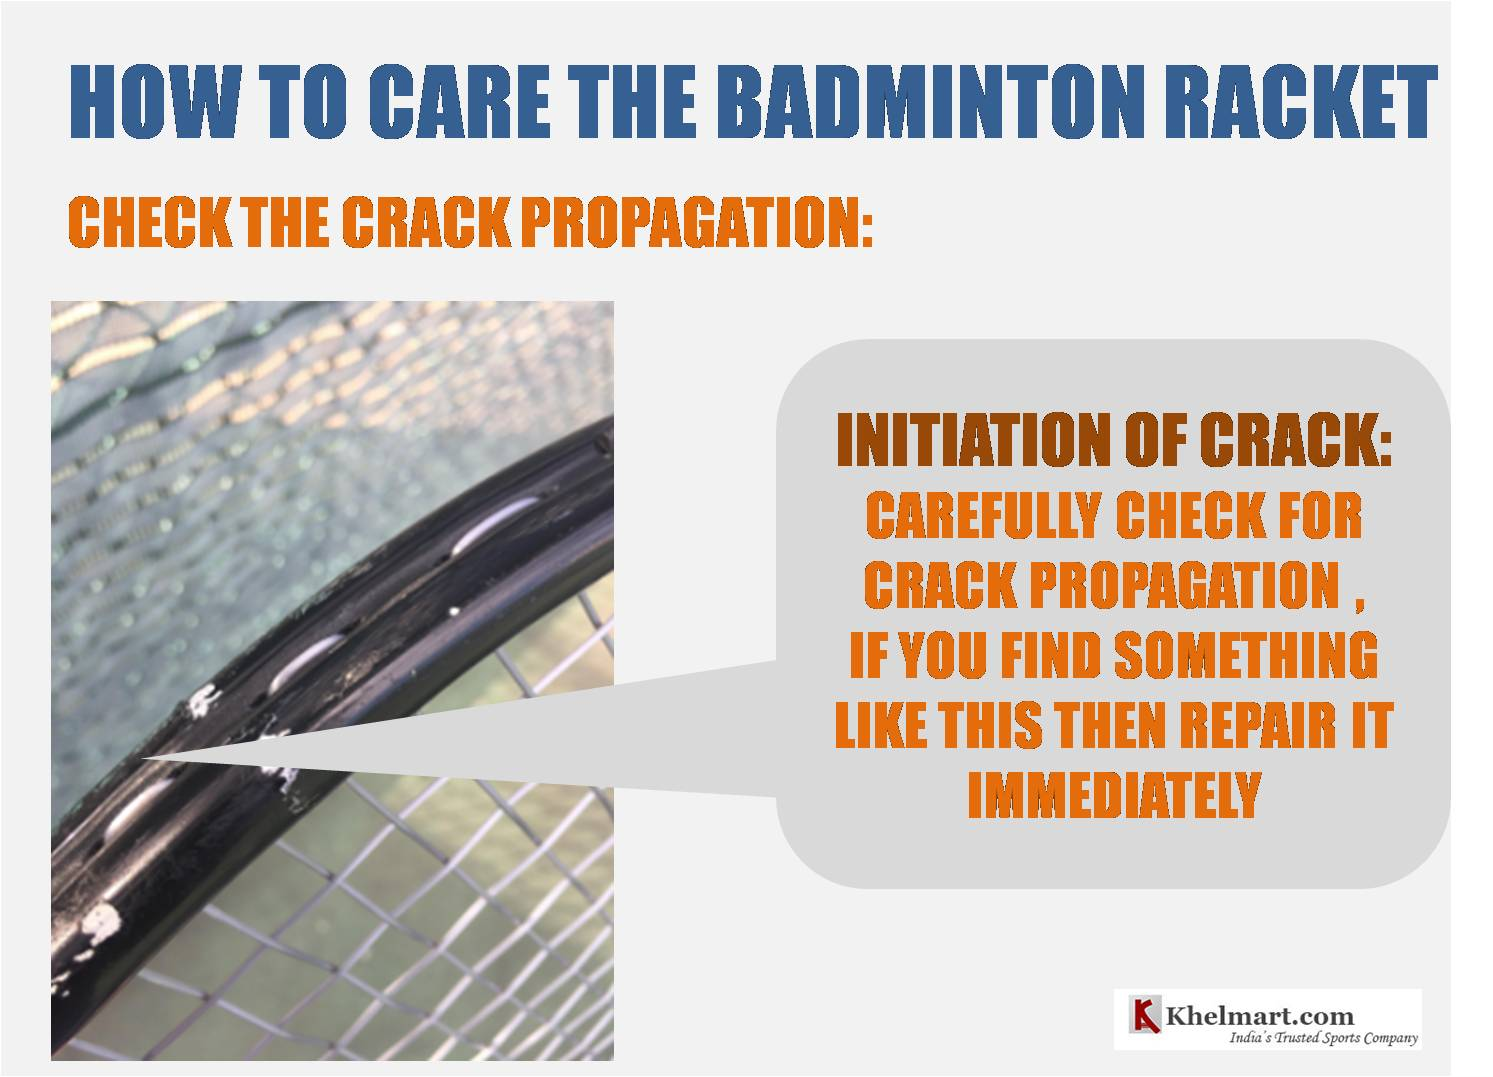 How_to_take_care_of_badminton_racket_Crack_Care_khelmart_Guide